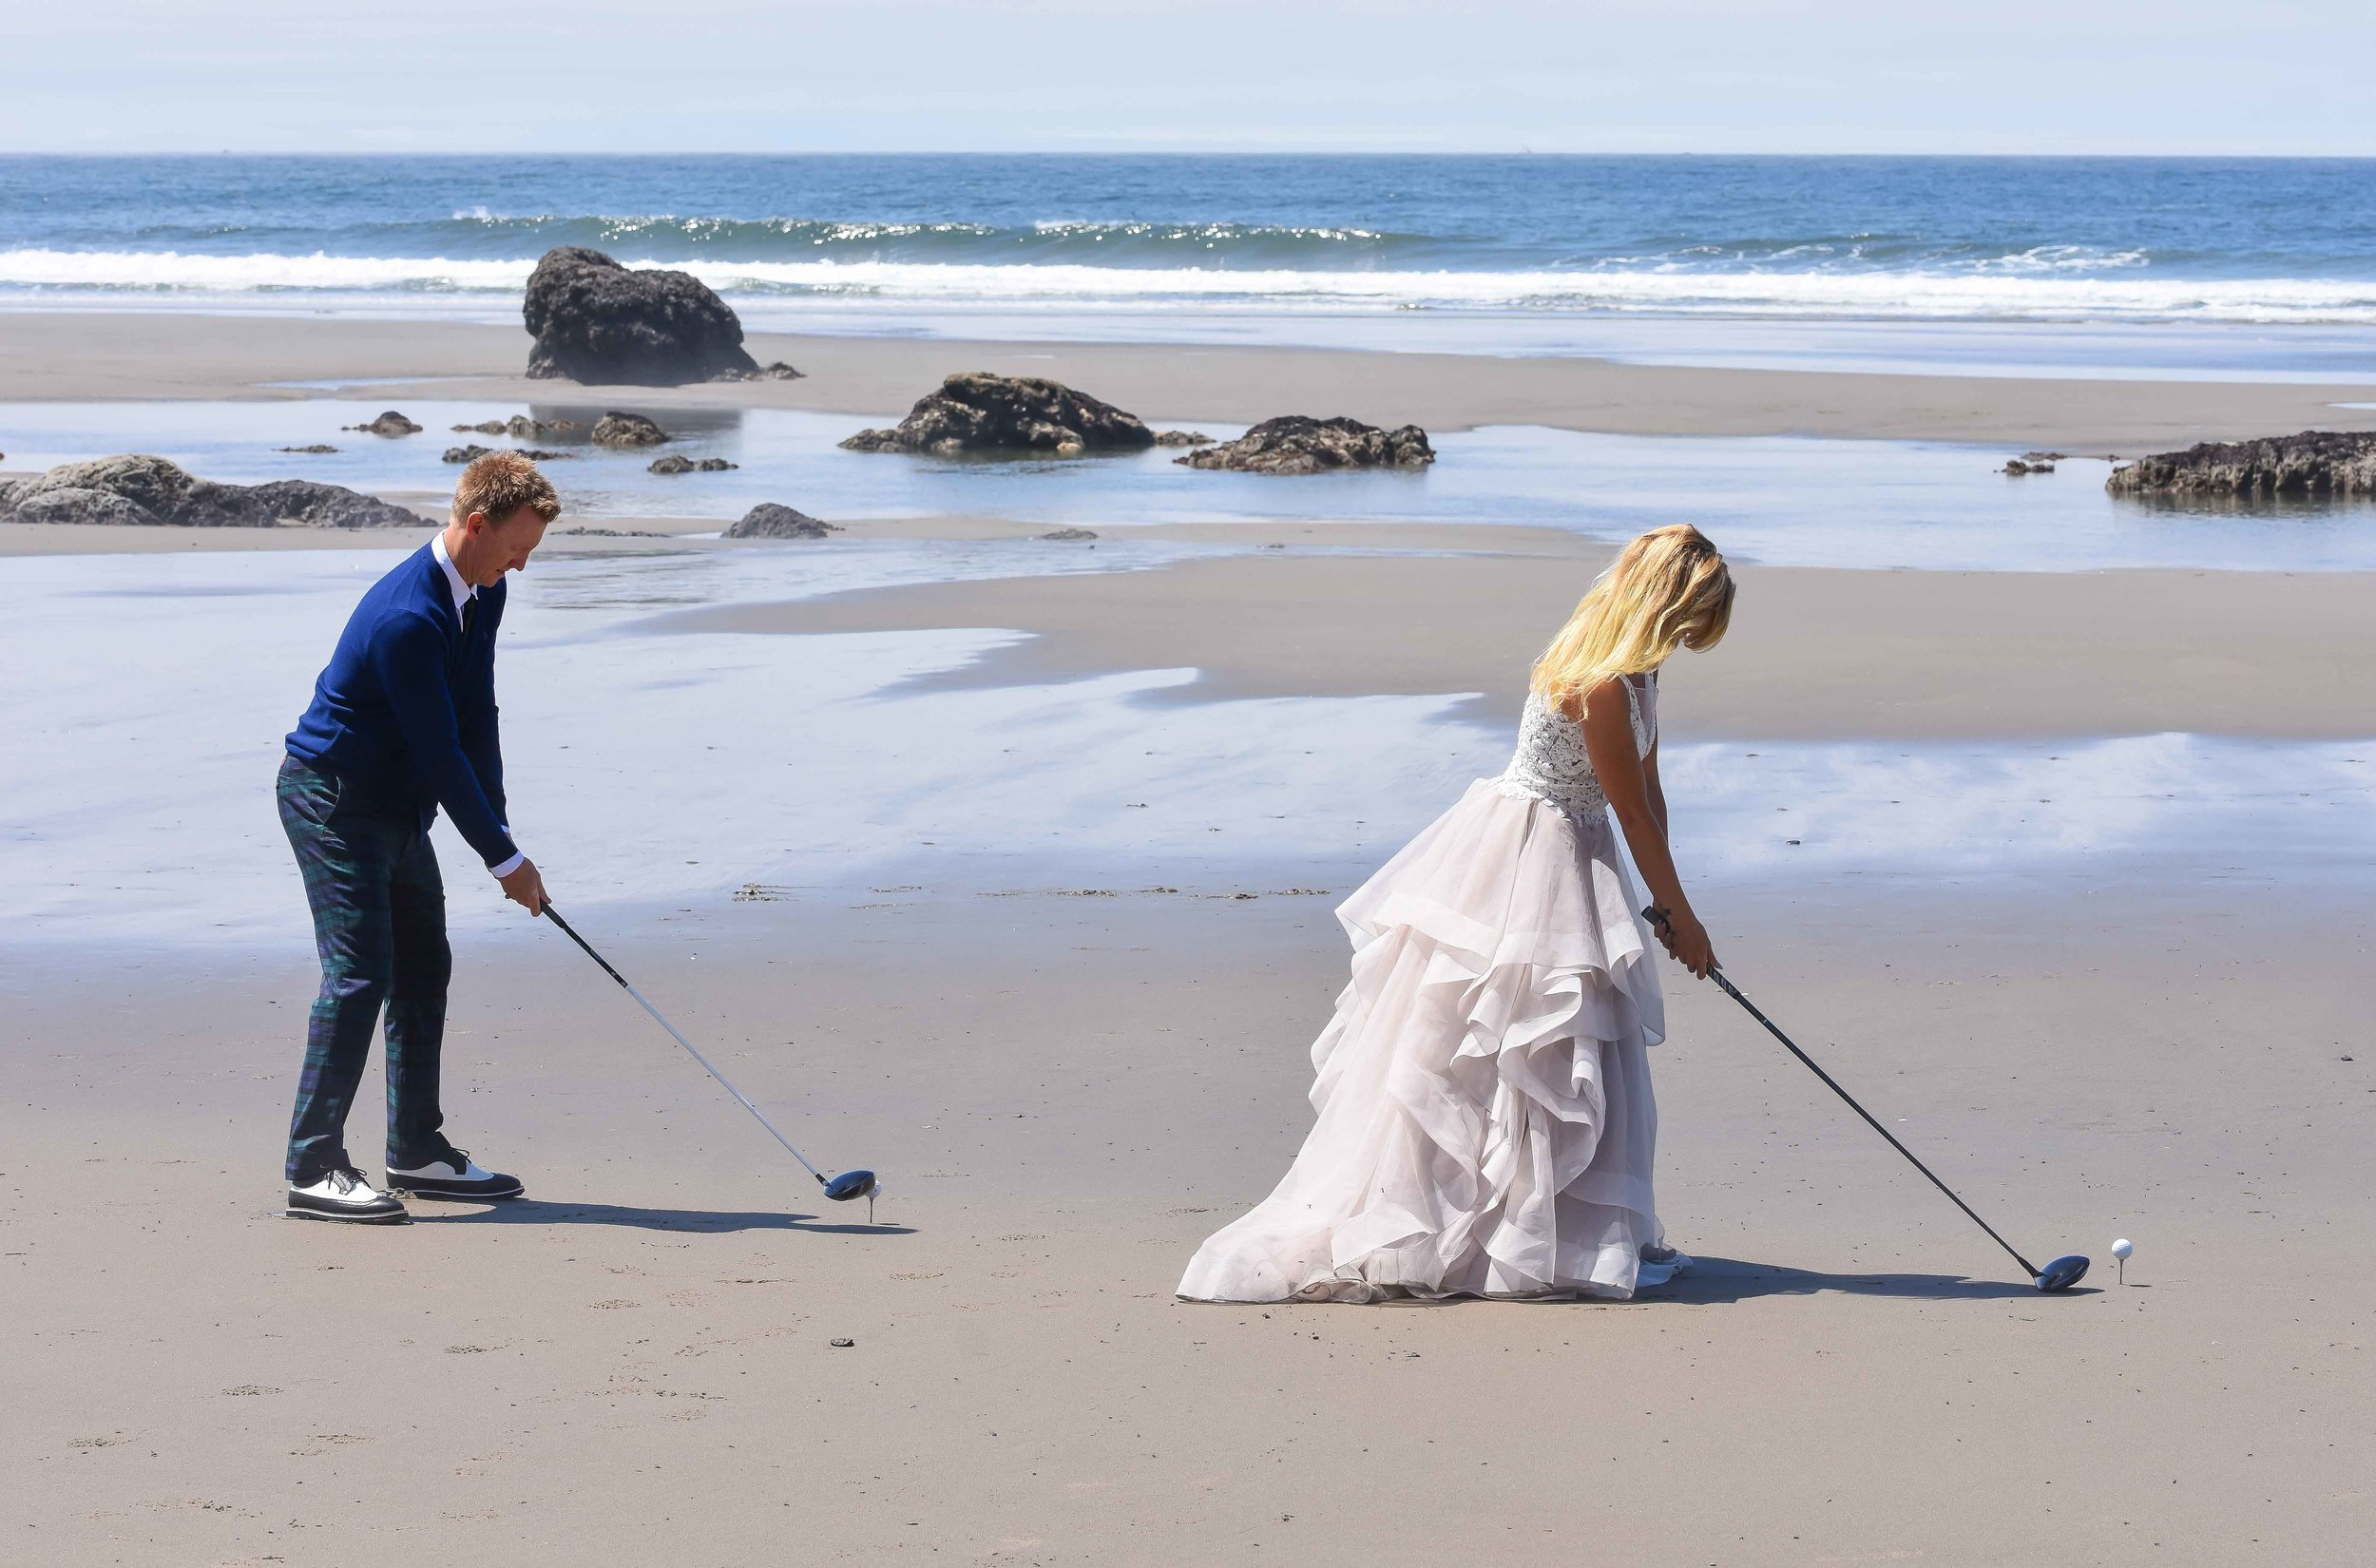 Jimmy and Kenzie decided to drive one into the Pacific to finalize their wedding vows to each other.